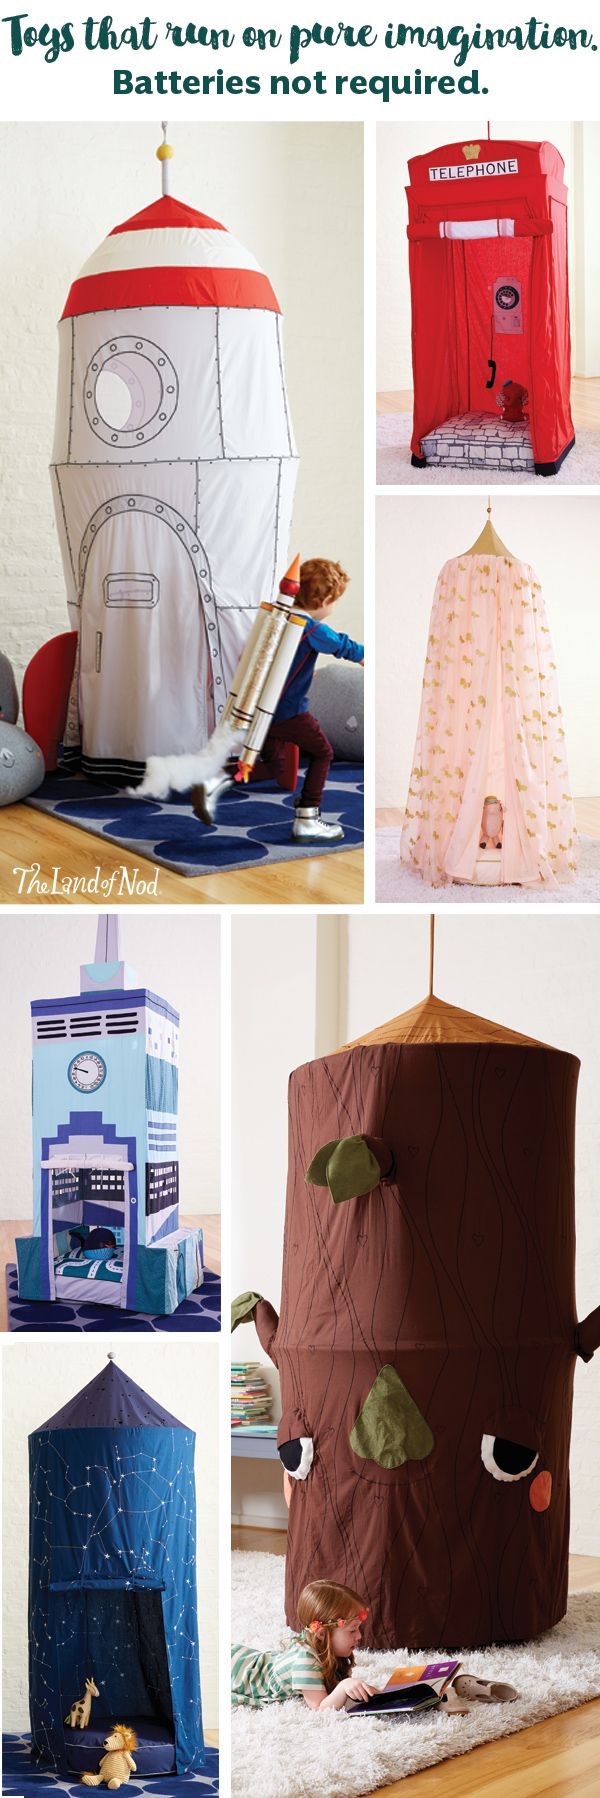 Create a playspace anyplace with a teepee, hanging canopy or playhouse. By choosing a playhouse that's both functional and chic, you can add interest to your living space, while also keeping the little ones busy.